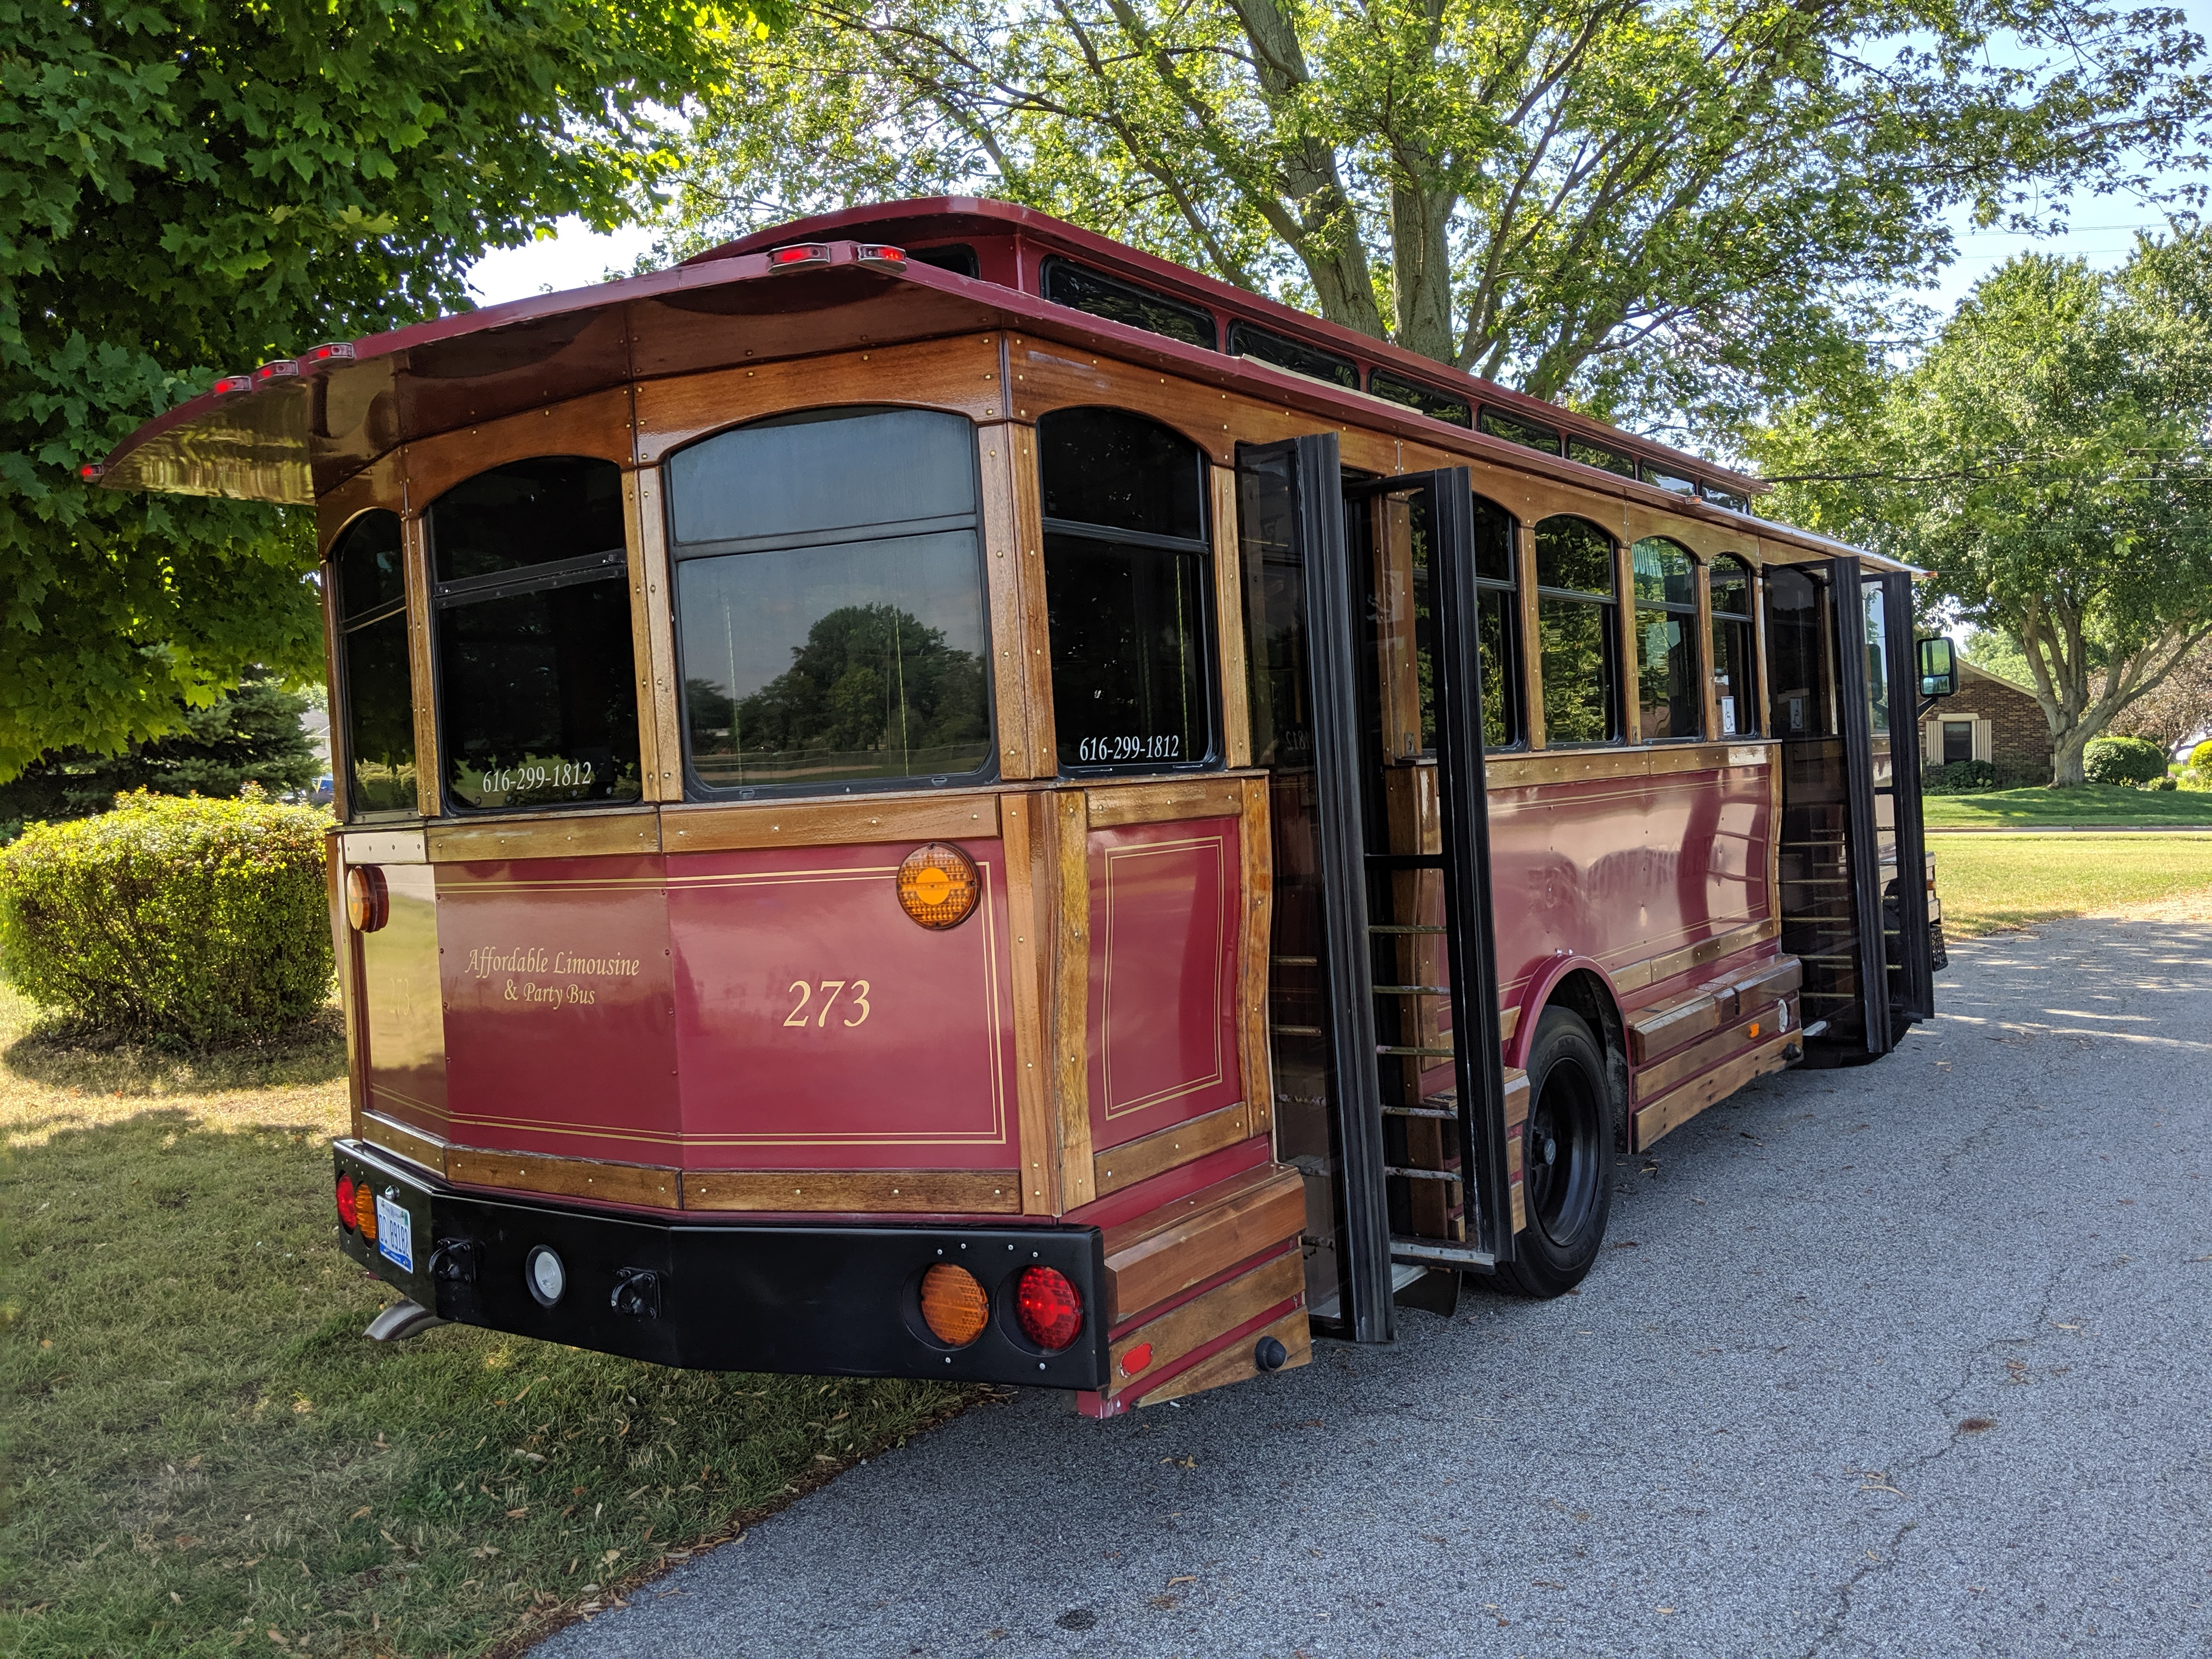 27 Passenger Trolley #27-3 Passenger's Side Rear